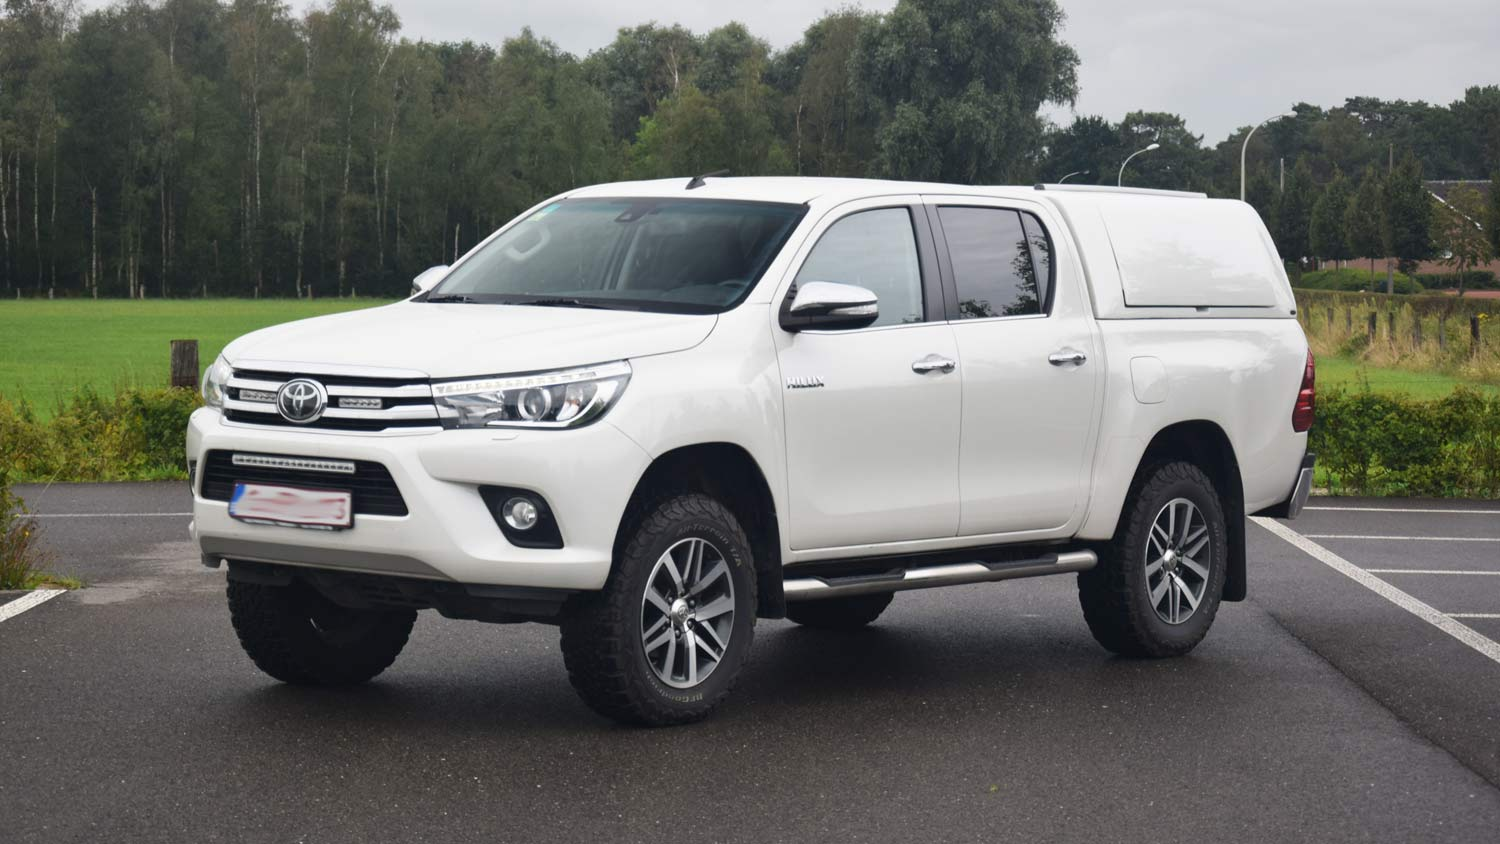 Force Pro Plus Canopy on Toyota Hilux 2016 - Image 2